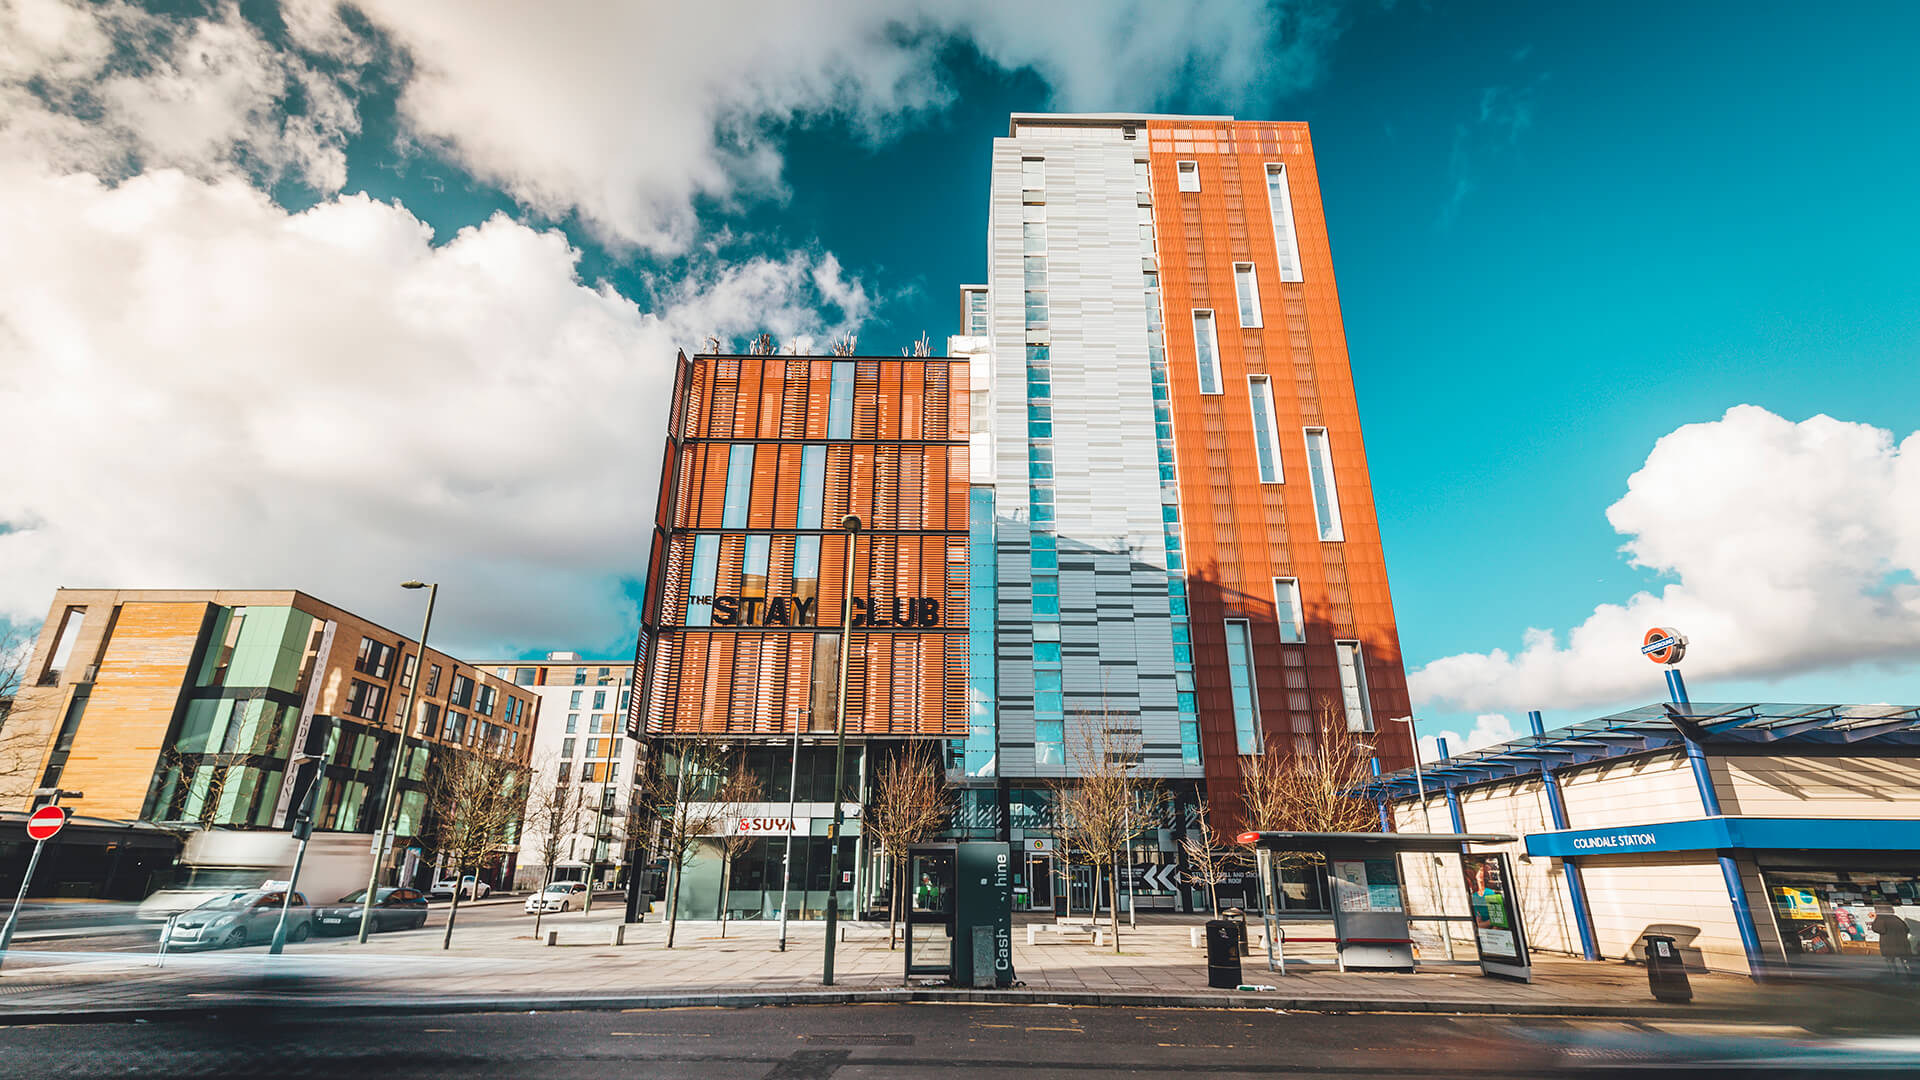 The Stay Club Colindale - London Student Accommodation